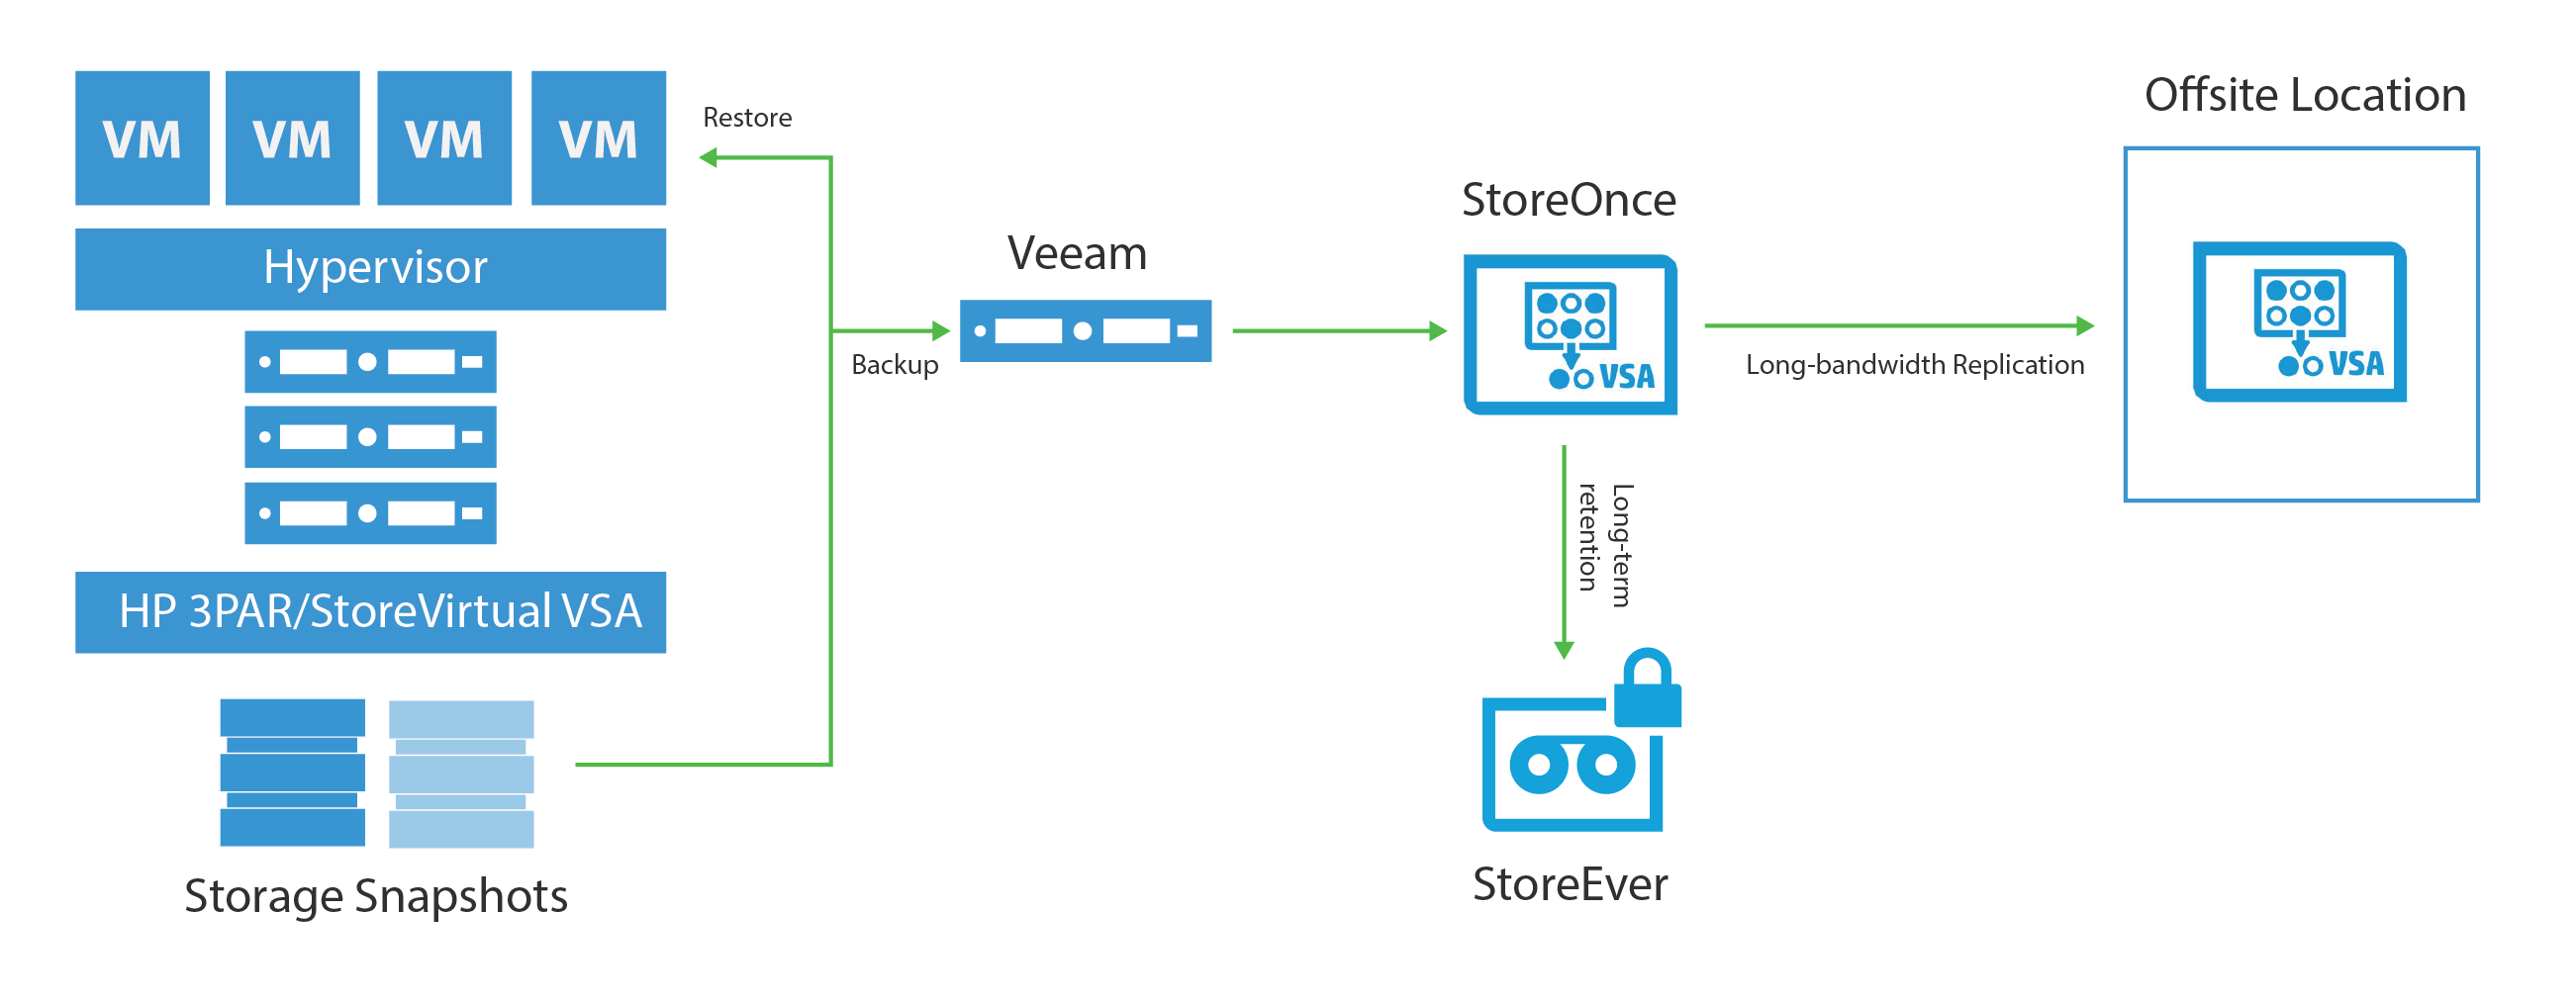 Veeam And Hp Availability Solution For Enterprise